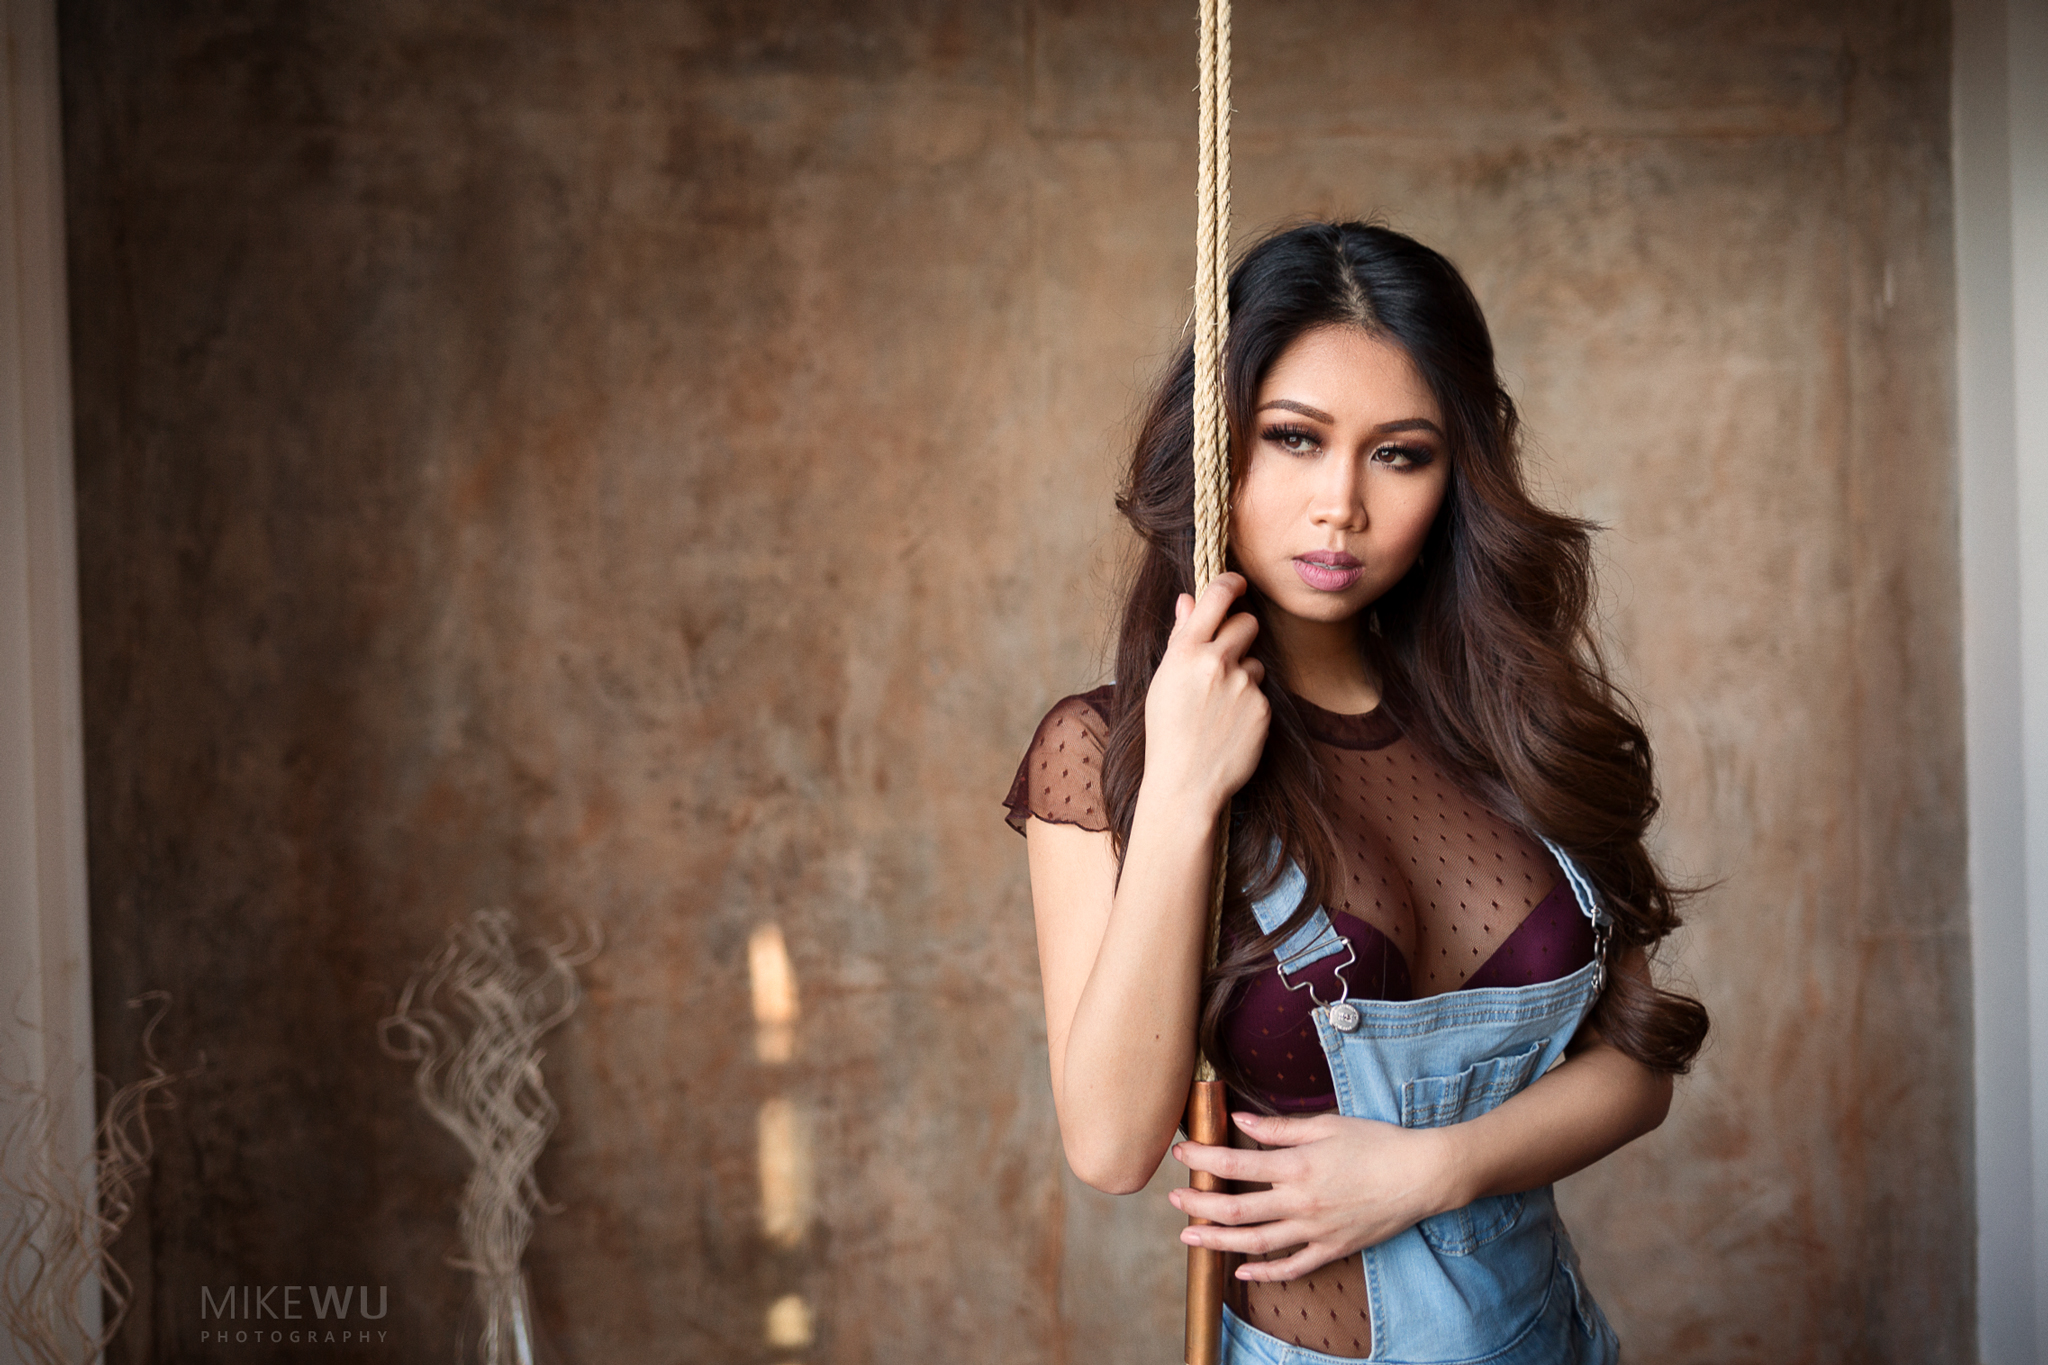 vancouver portrait photographer mike wu indoor studio photography rope inside overalls beauty asian chinese female lady classy concrete wall golden